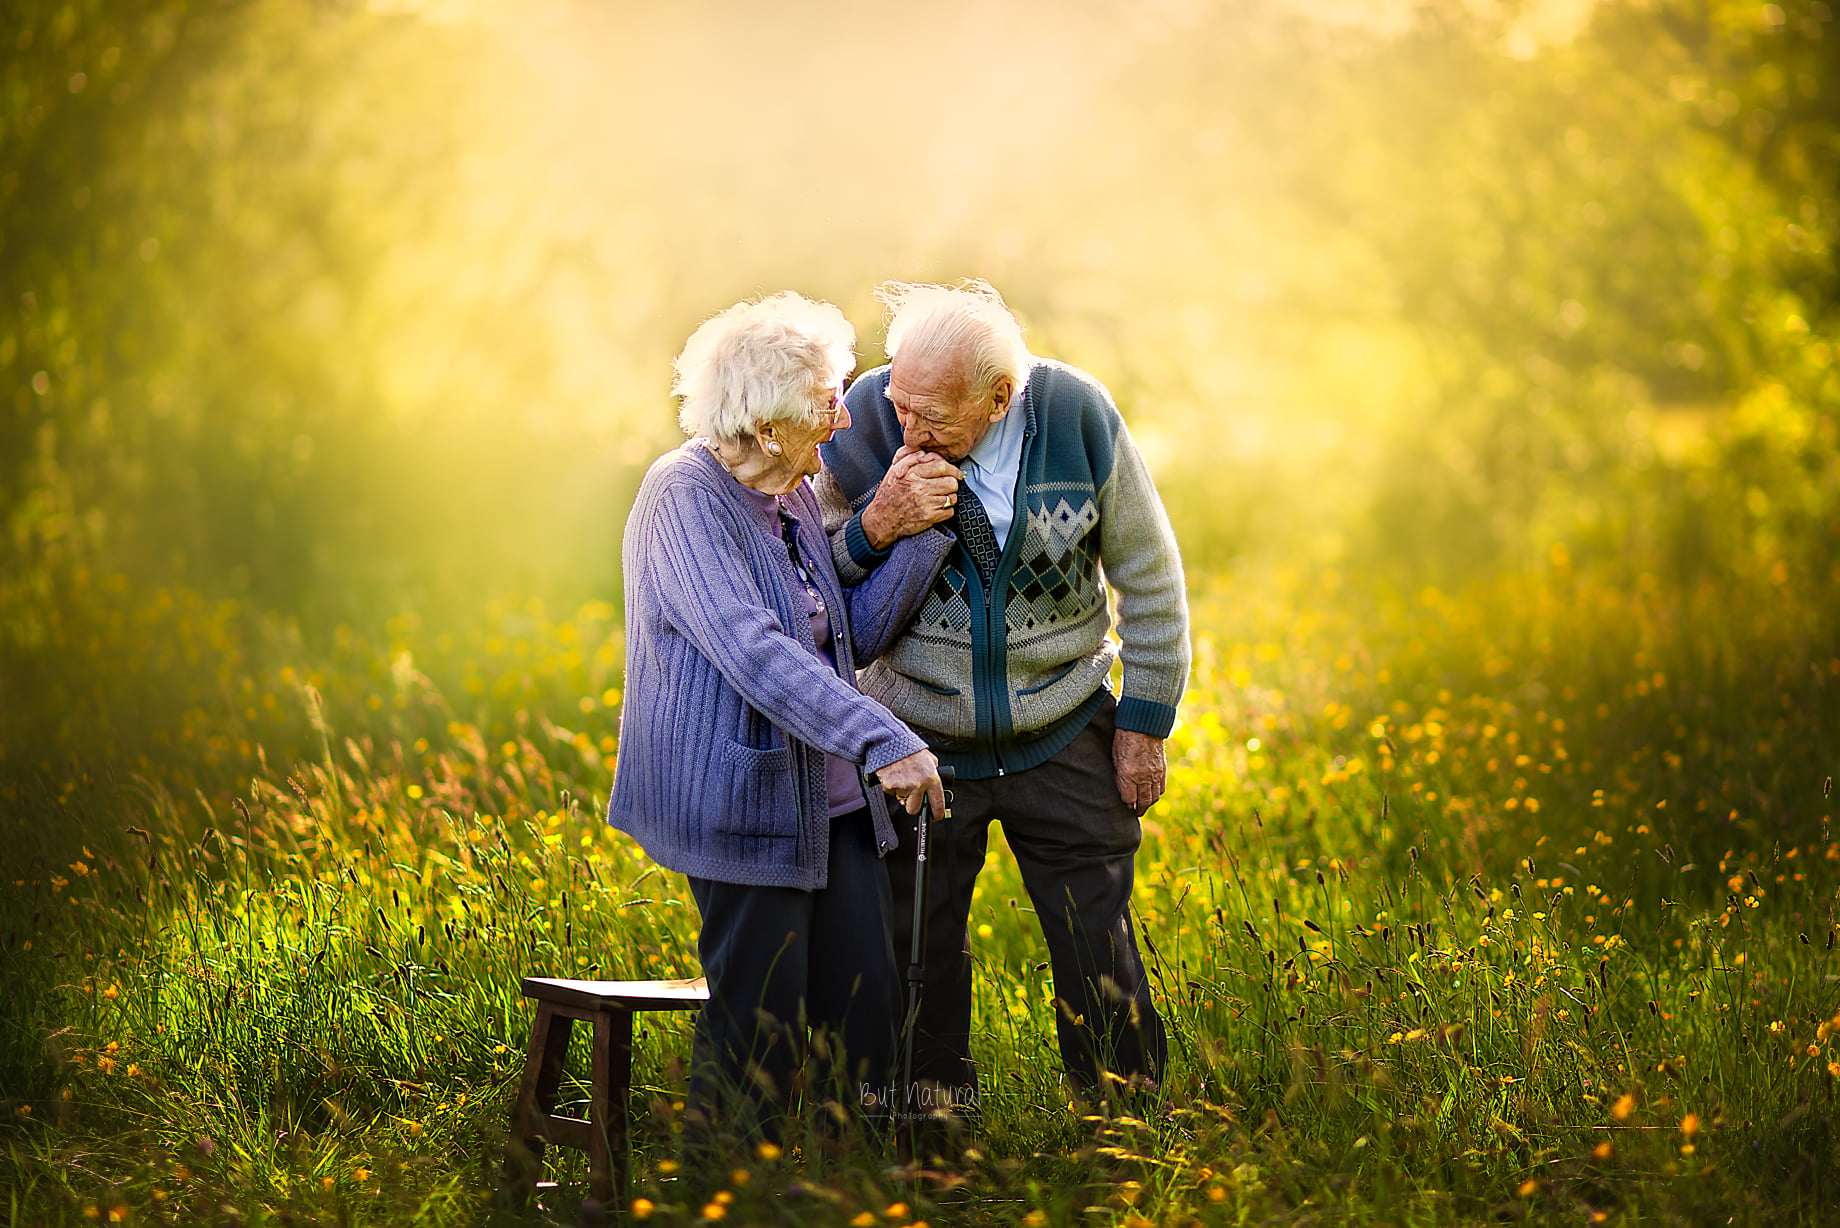 Elderly Couple Photoshoot by Sujata Setia - But Natural Photography